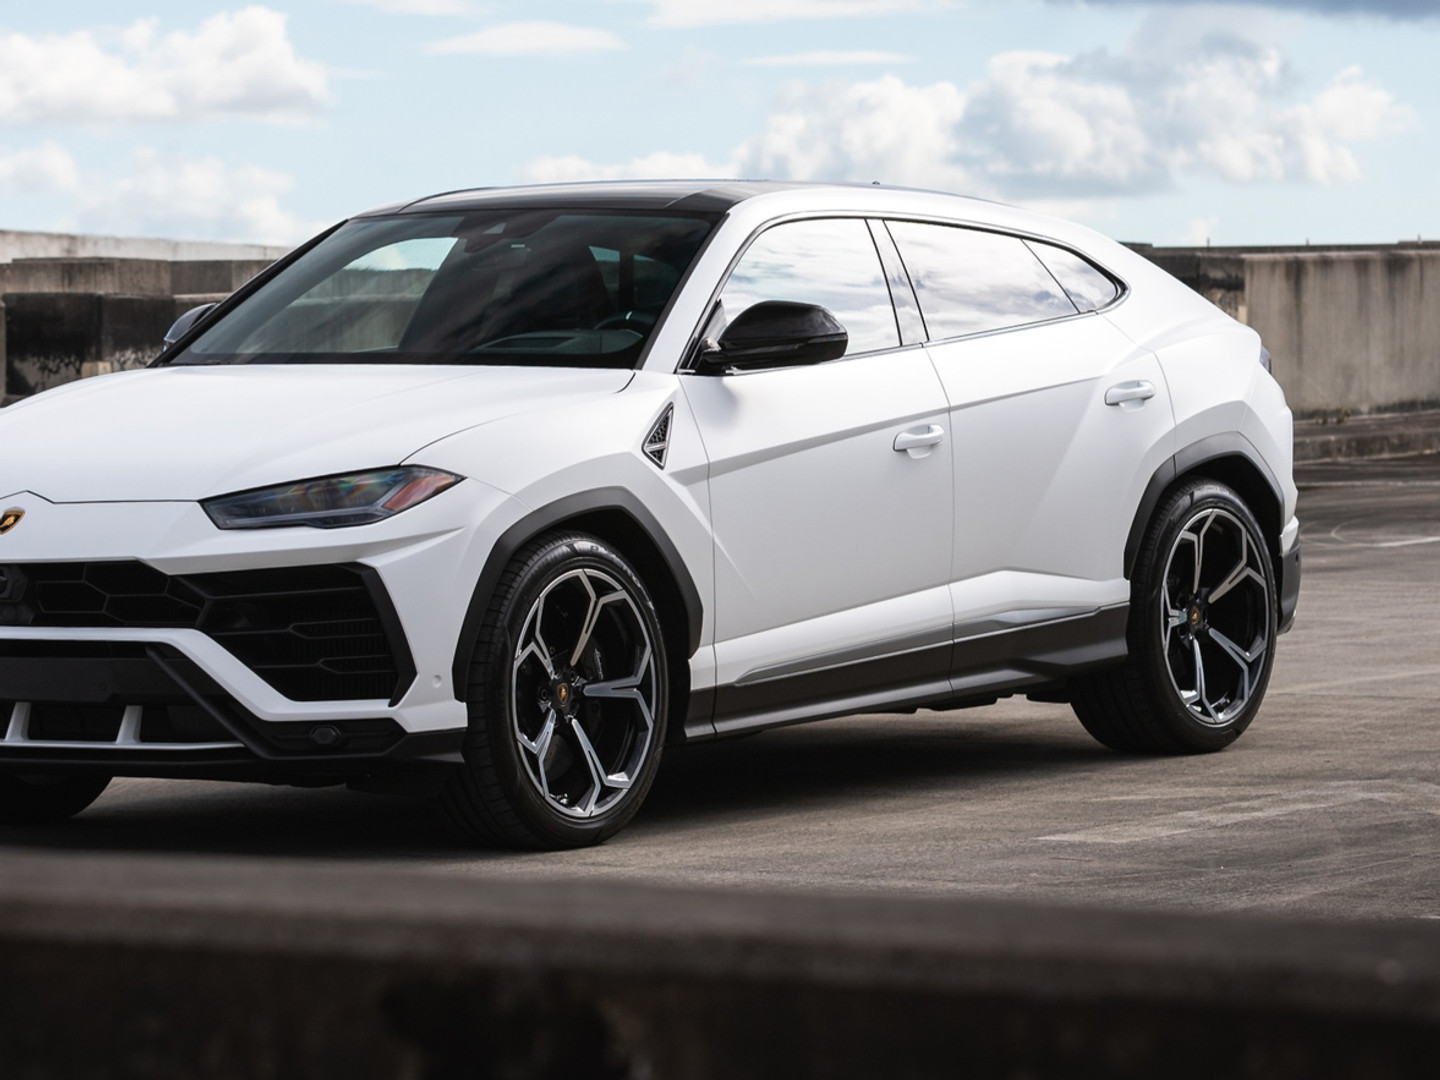 Lamborghini Urus Satin white 3M best car wrap Miami